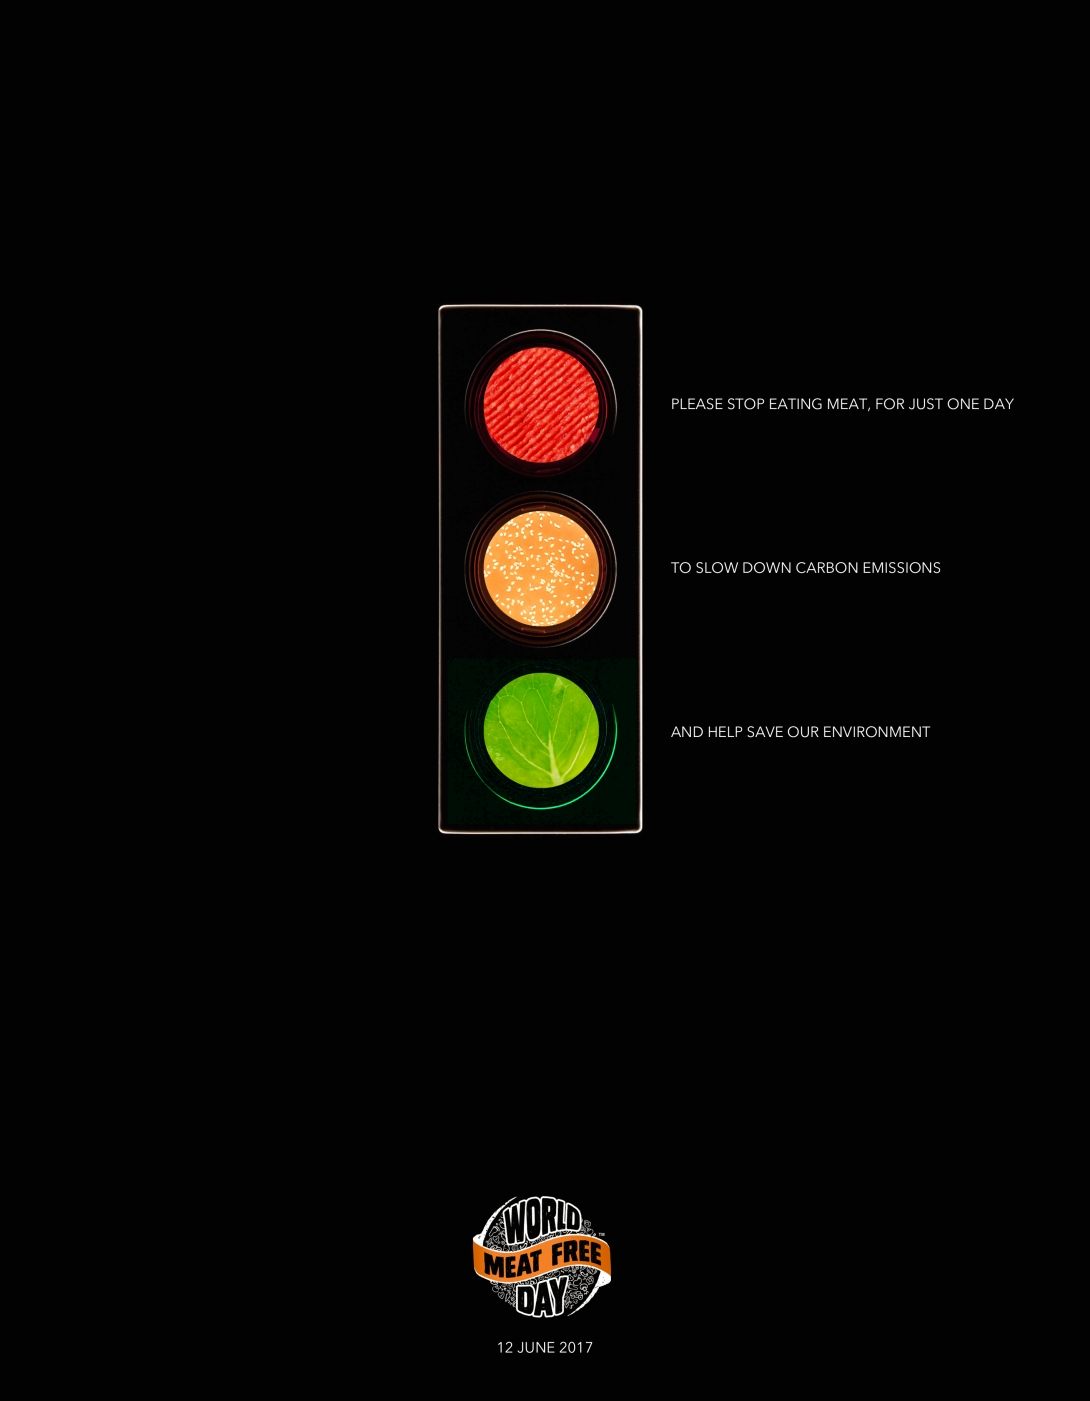 Advertising concept for world meat free day - traffic lights